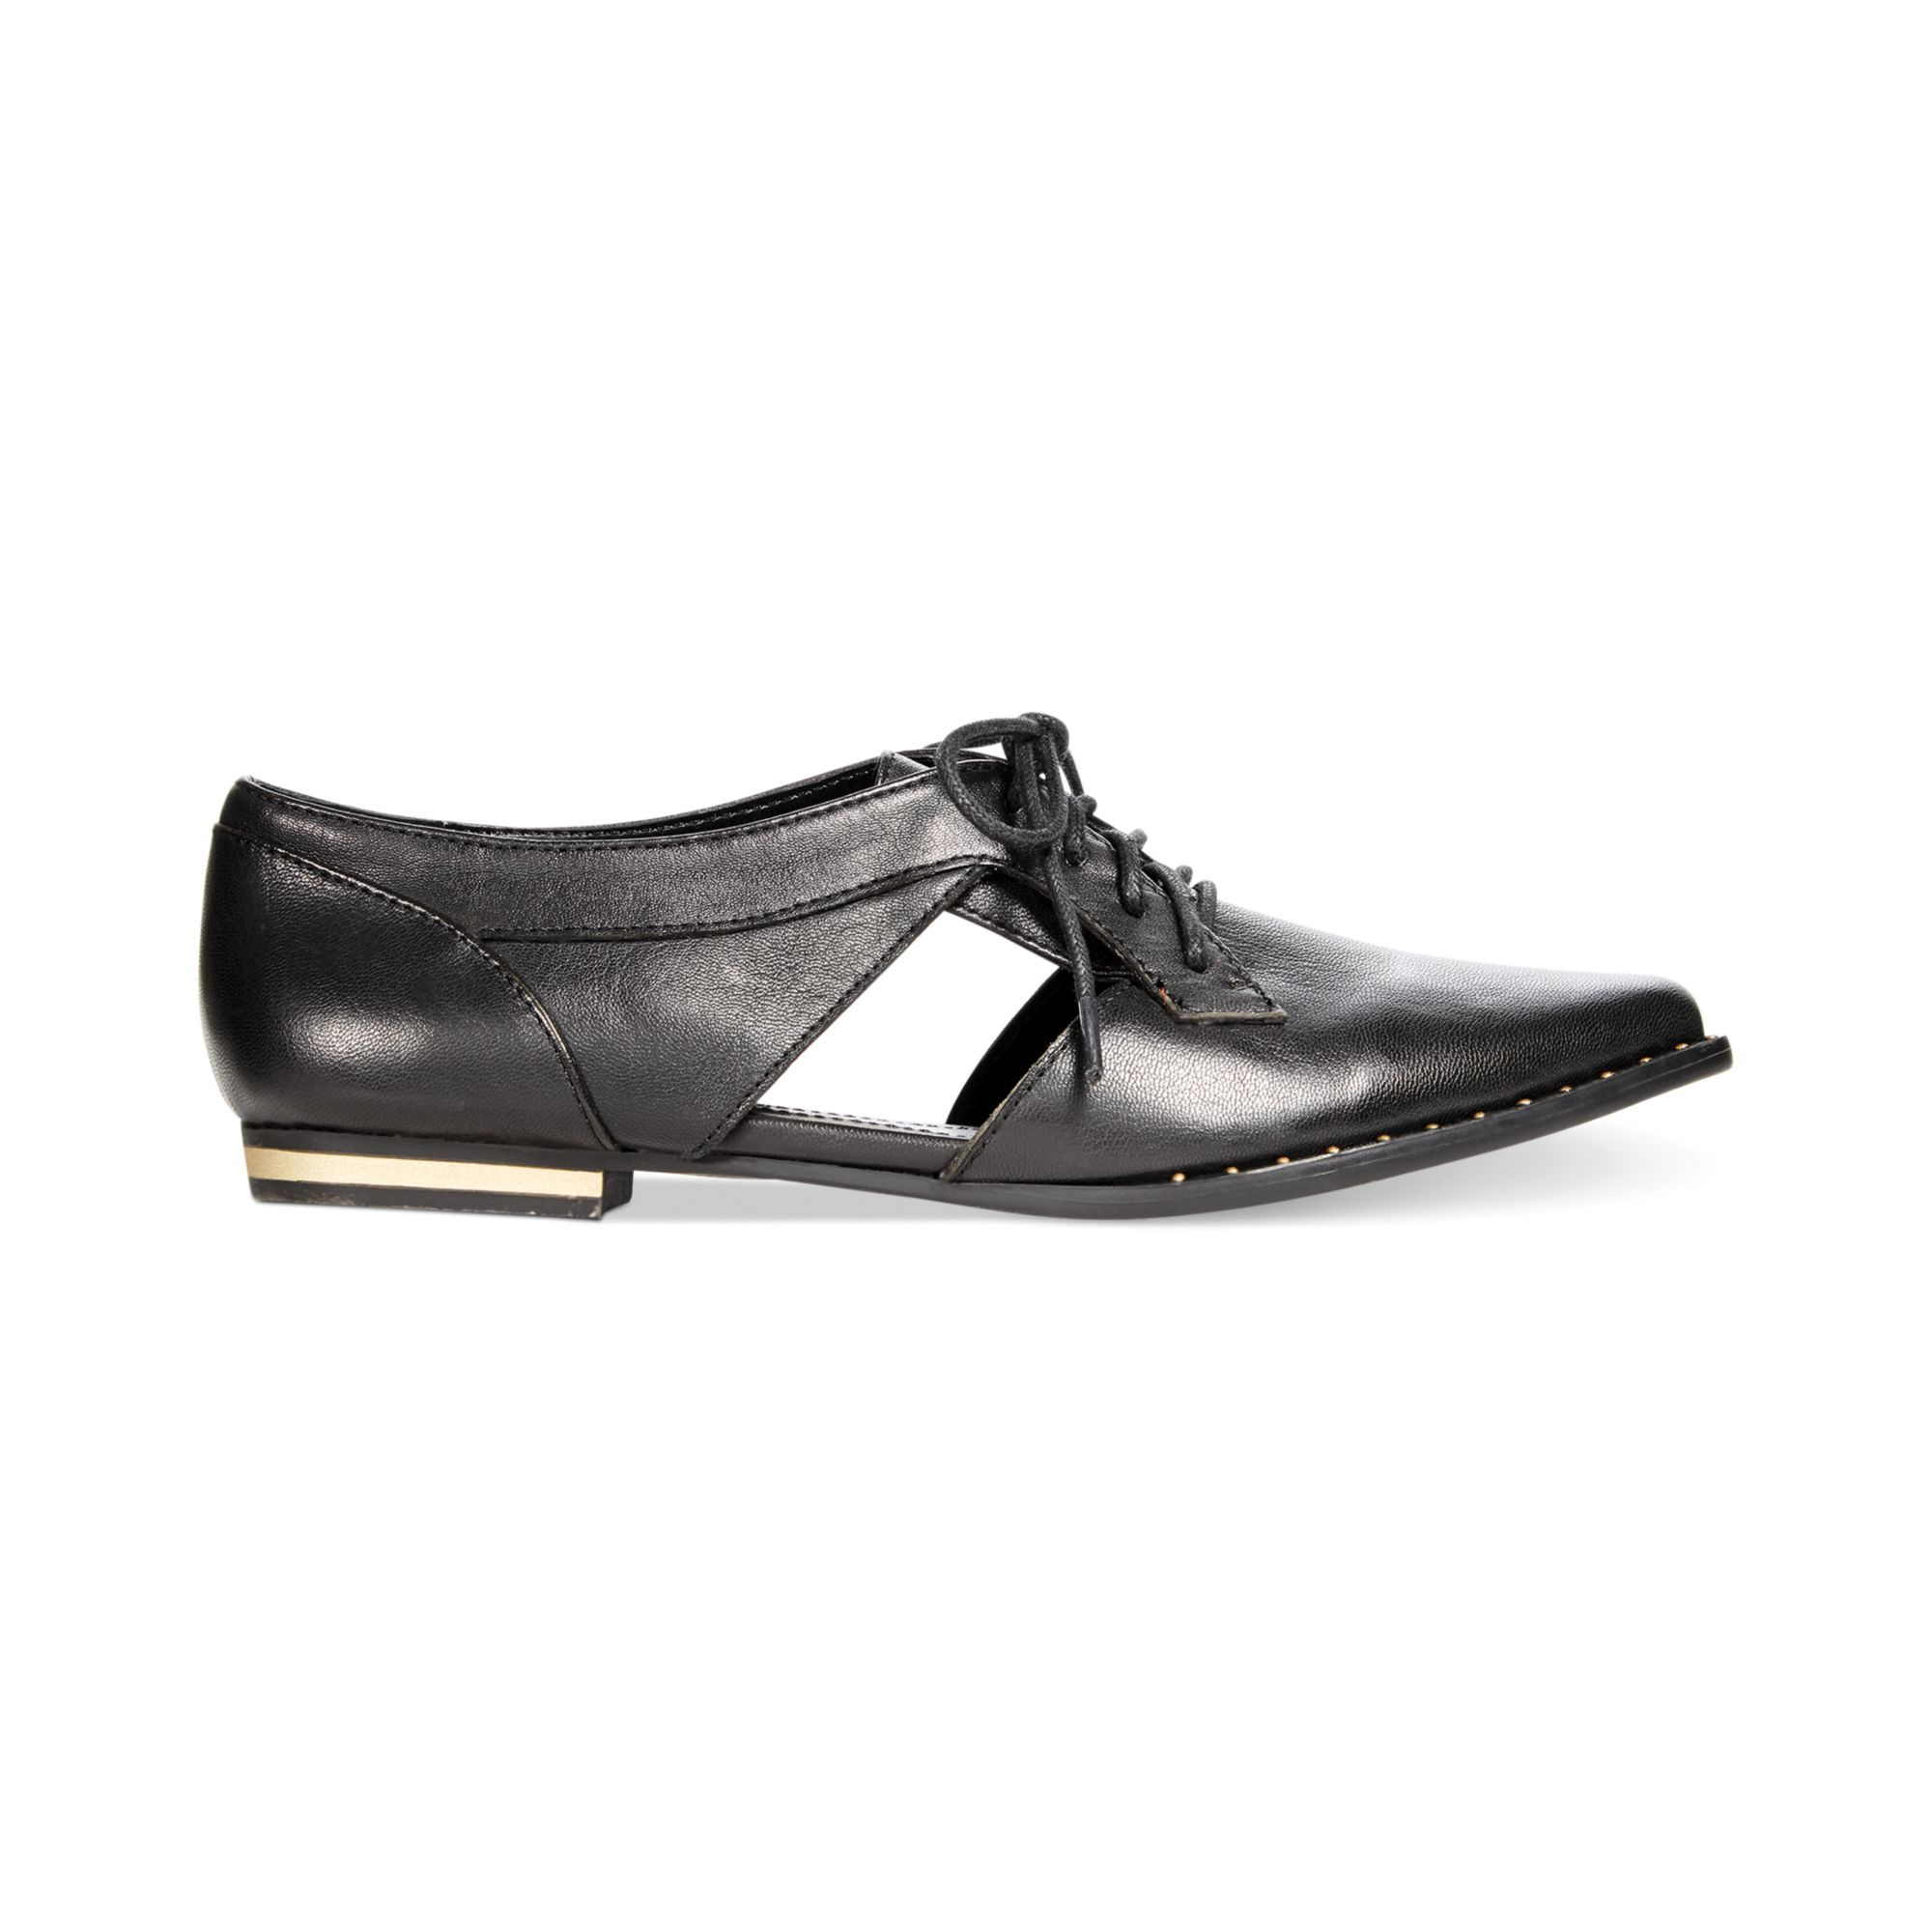 Fantastic 2017 Shoes - Womenu0026#39;s - Kenneth Cole Reaction Vin Now Black Leather Boots - Canada ZXB30036737